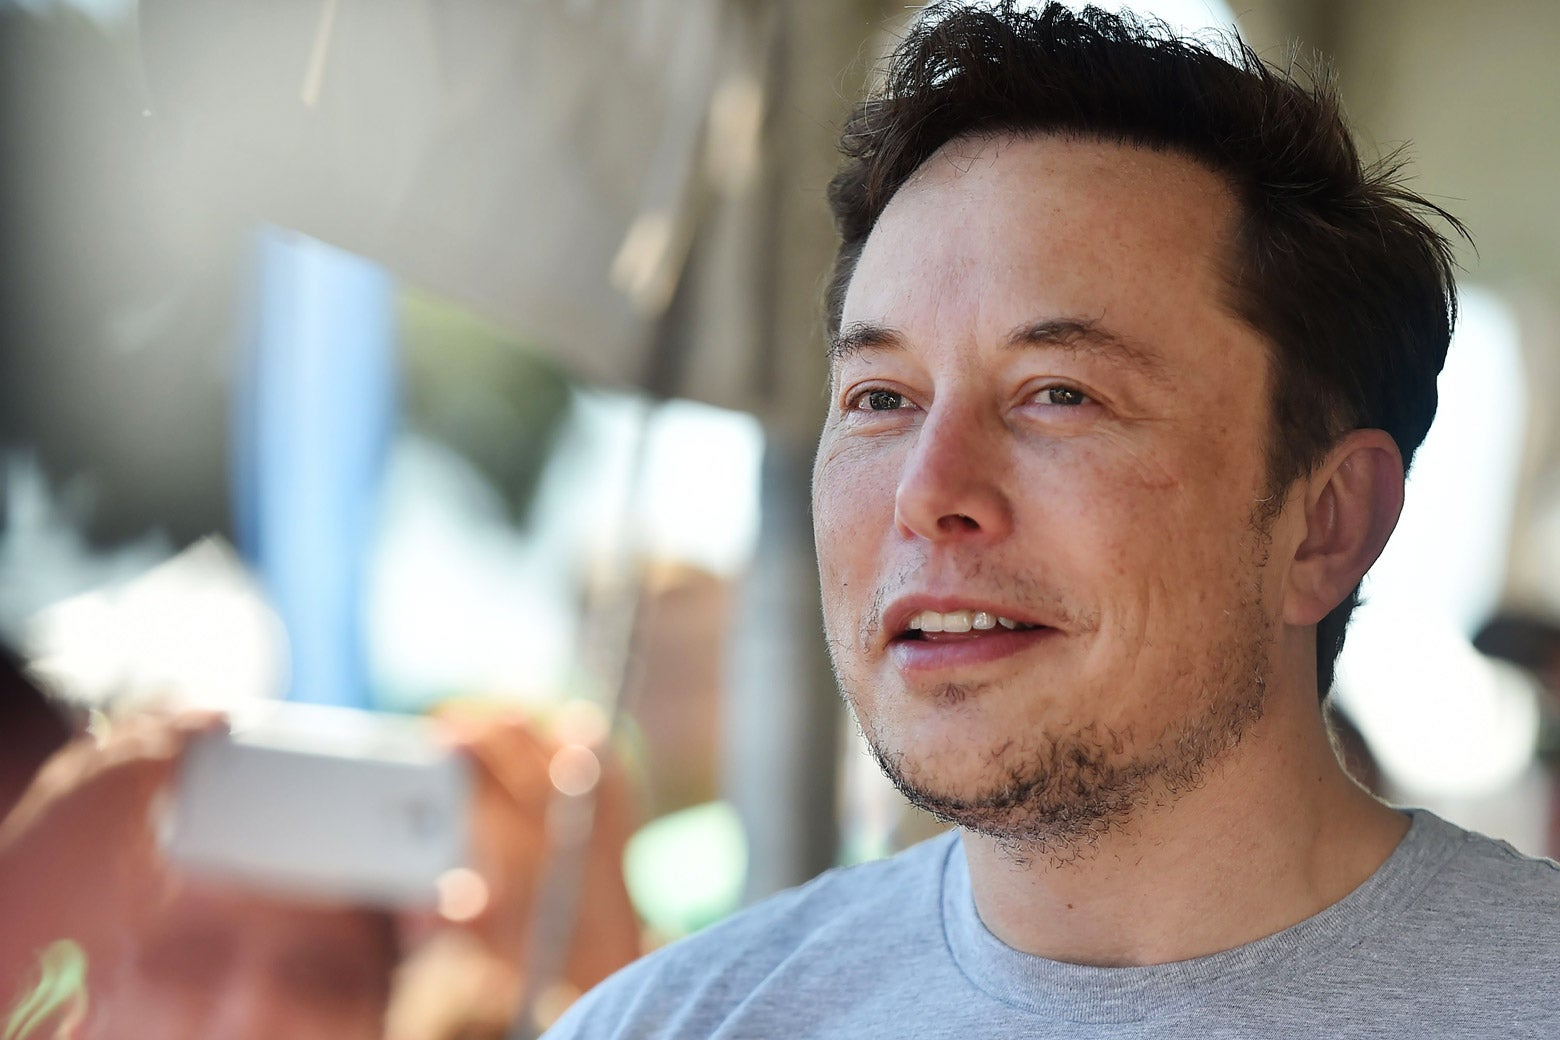 Elon Musk attends the 2018 SpaceX Hyperloop Pod Competition in Hawthorne, California, on July 22.